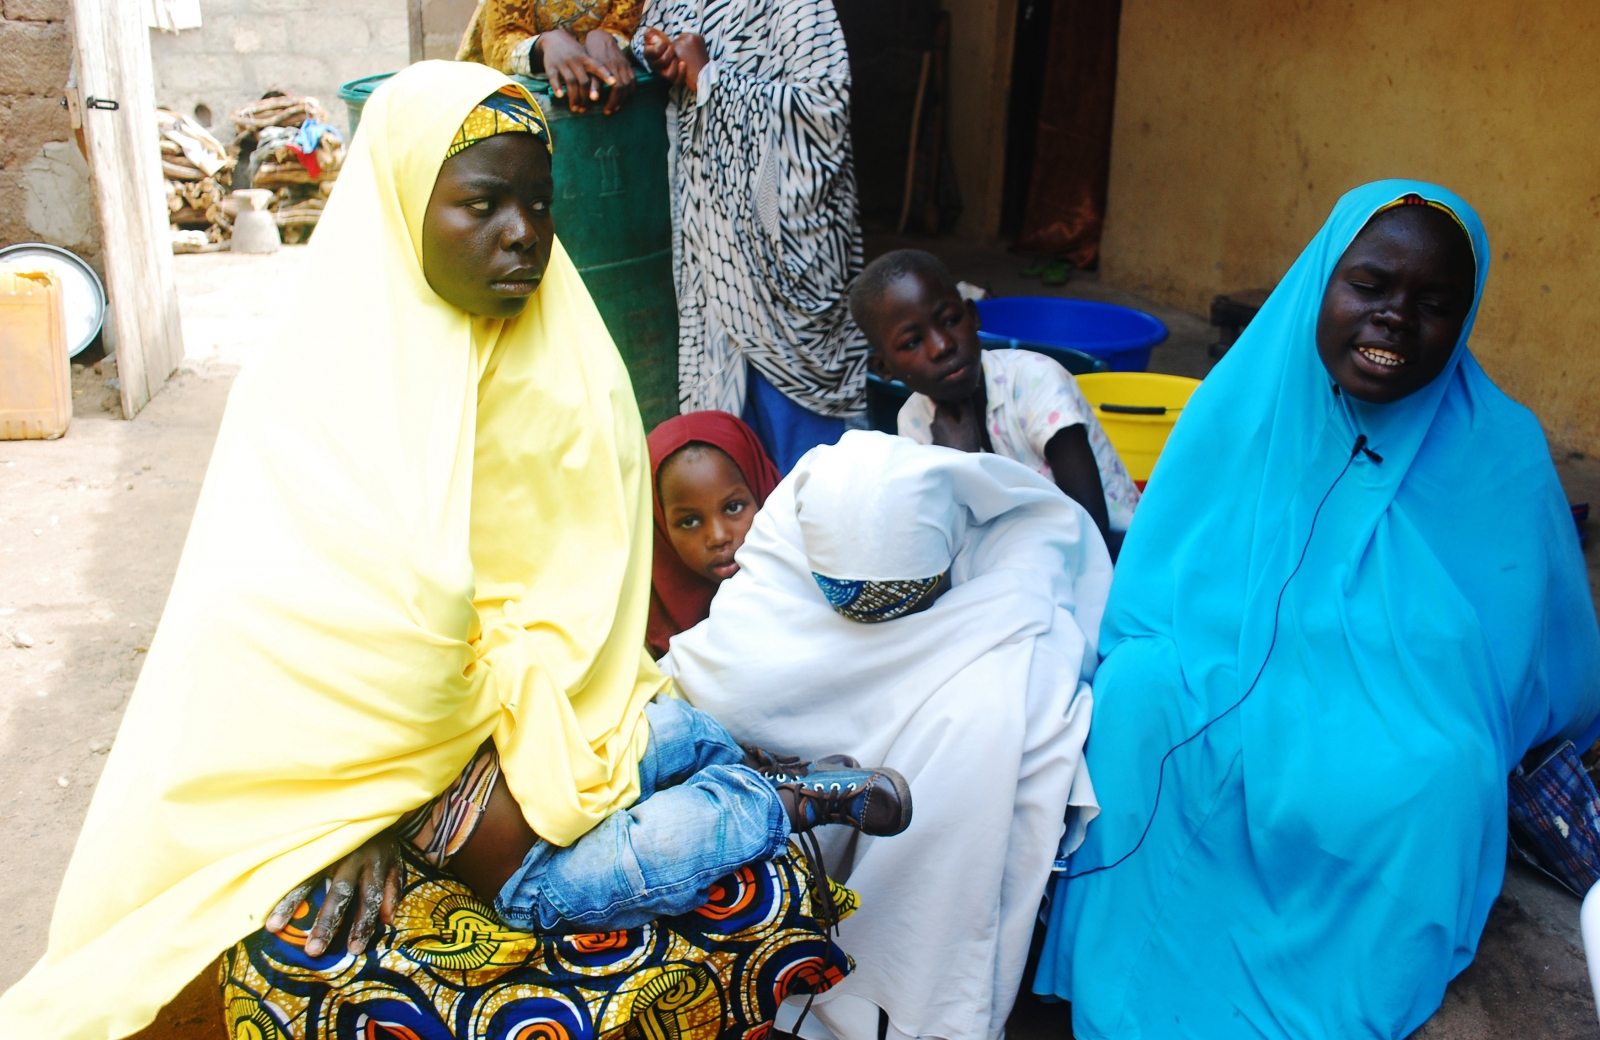 Women talk about their escape from violence after Boko Haram insurgents attacked their community